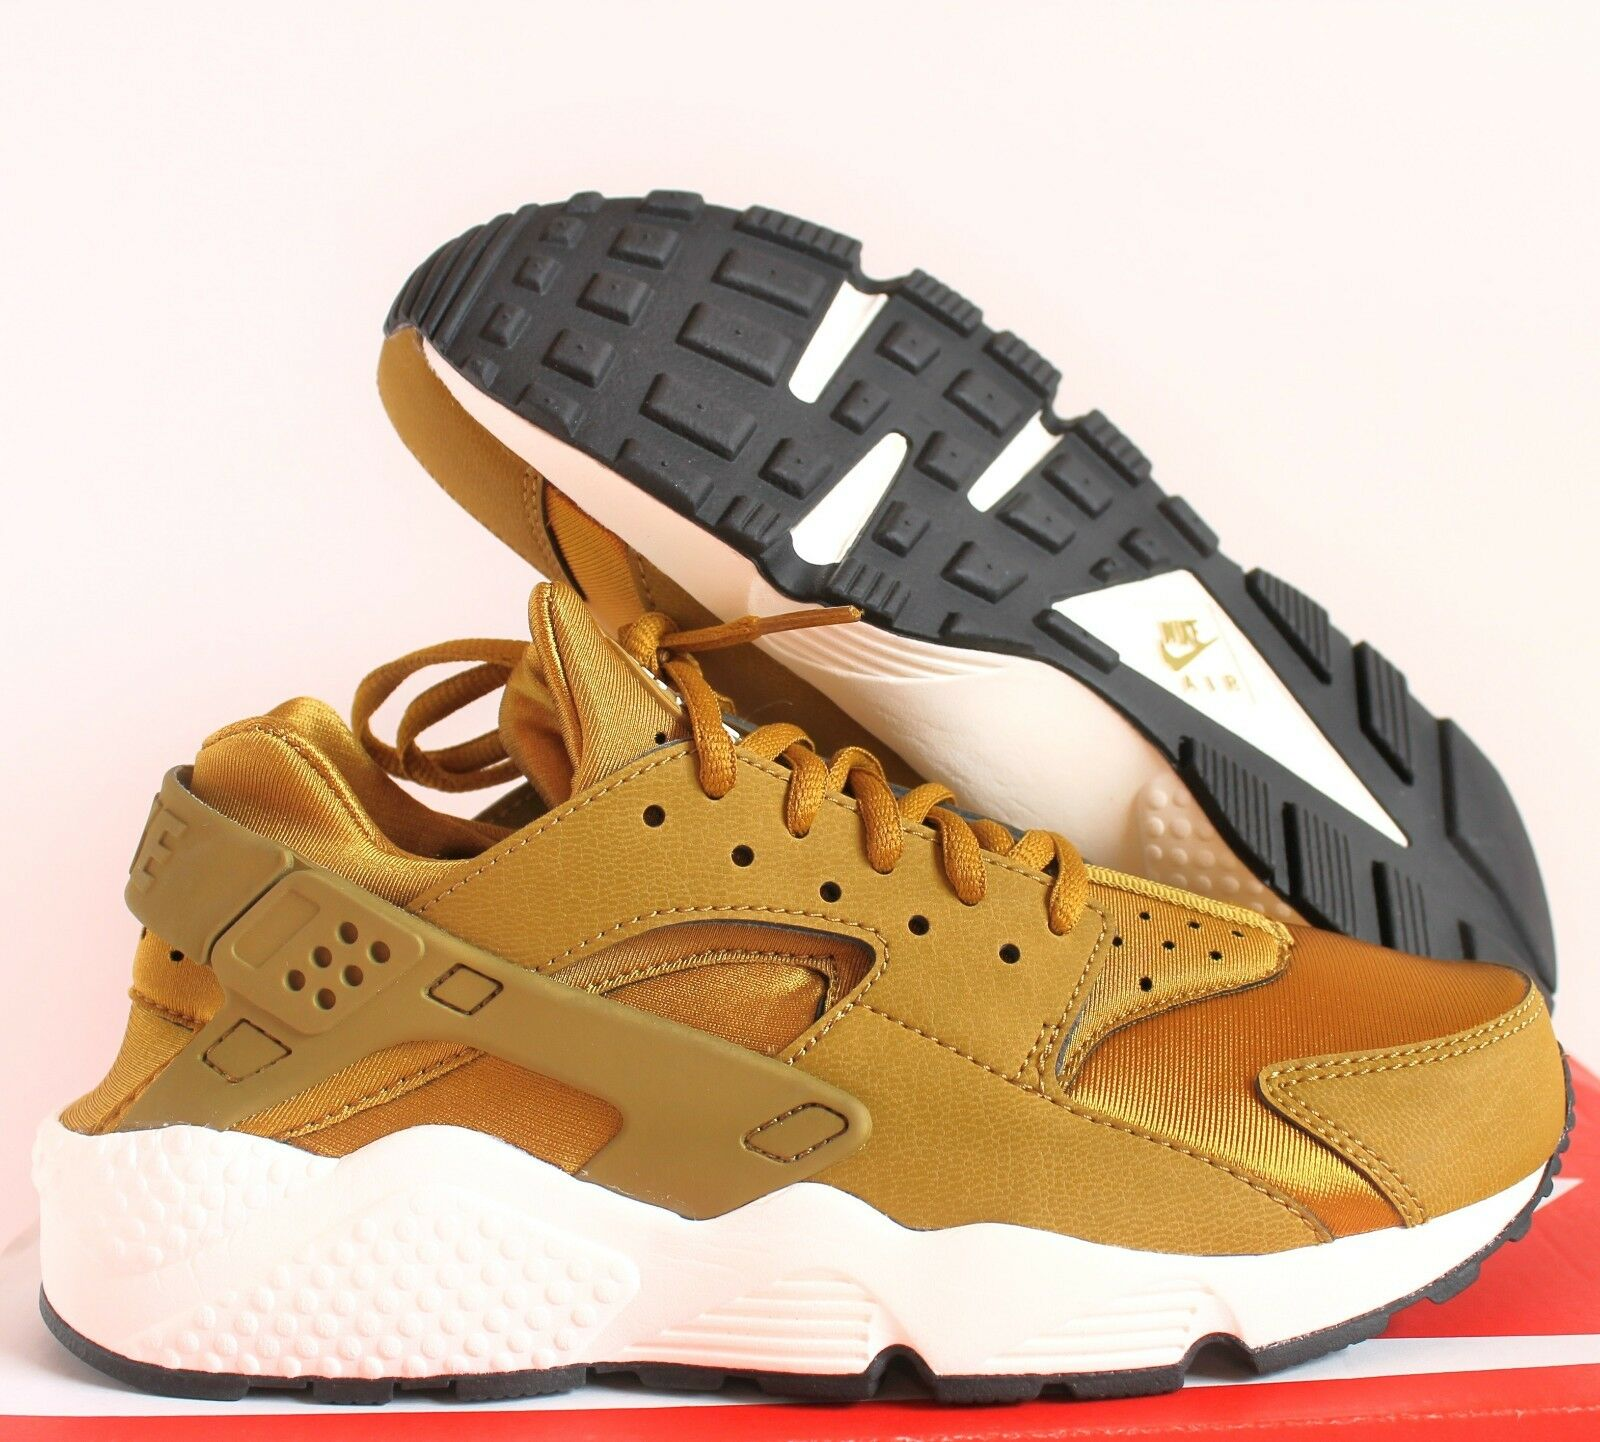 NIKE WOMEN AIR HUARACHE RUN BRONZINE-SAIL-BLACK SZ 6 [634835-700]